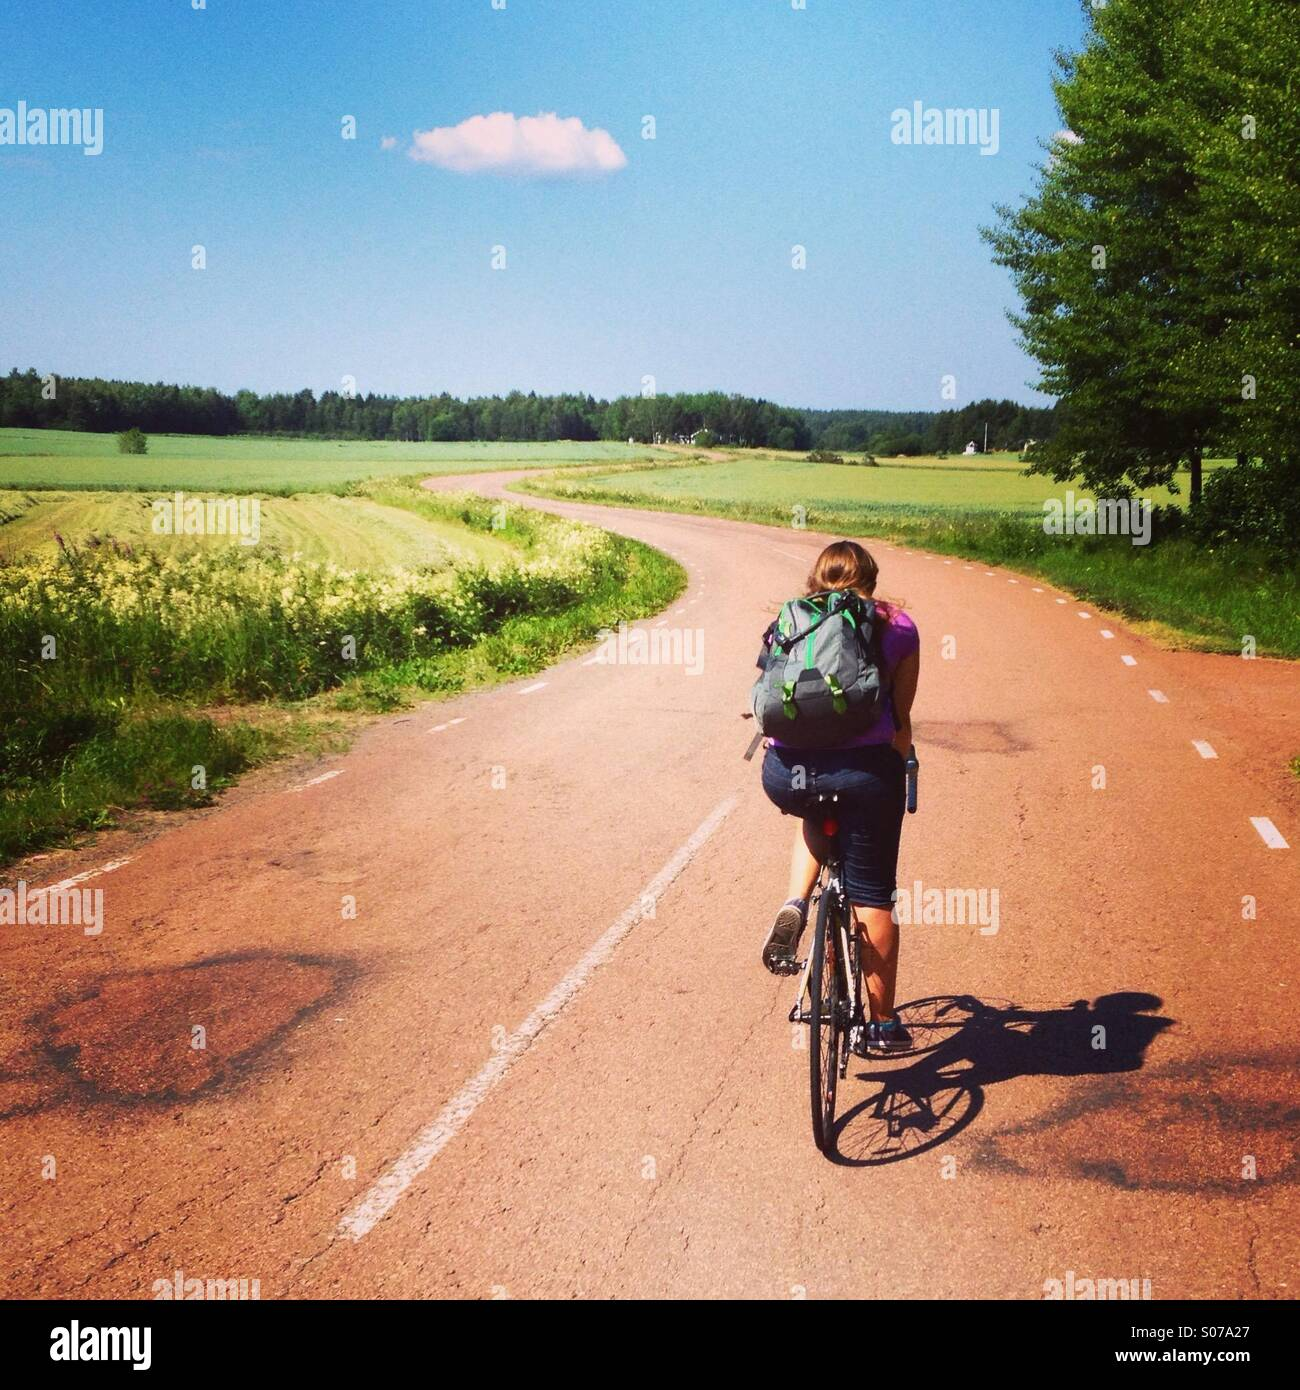 A woman on a cycling holiday on a snaking traditional red road in the Nordic Finnish archipelago of Åland - Stock Image